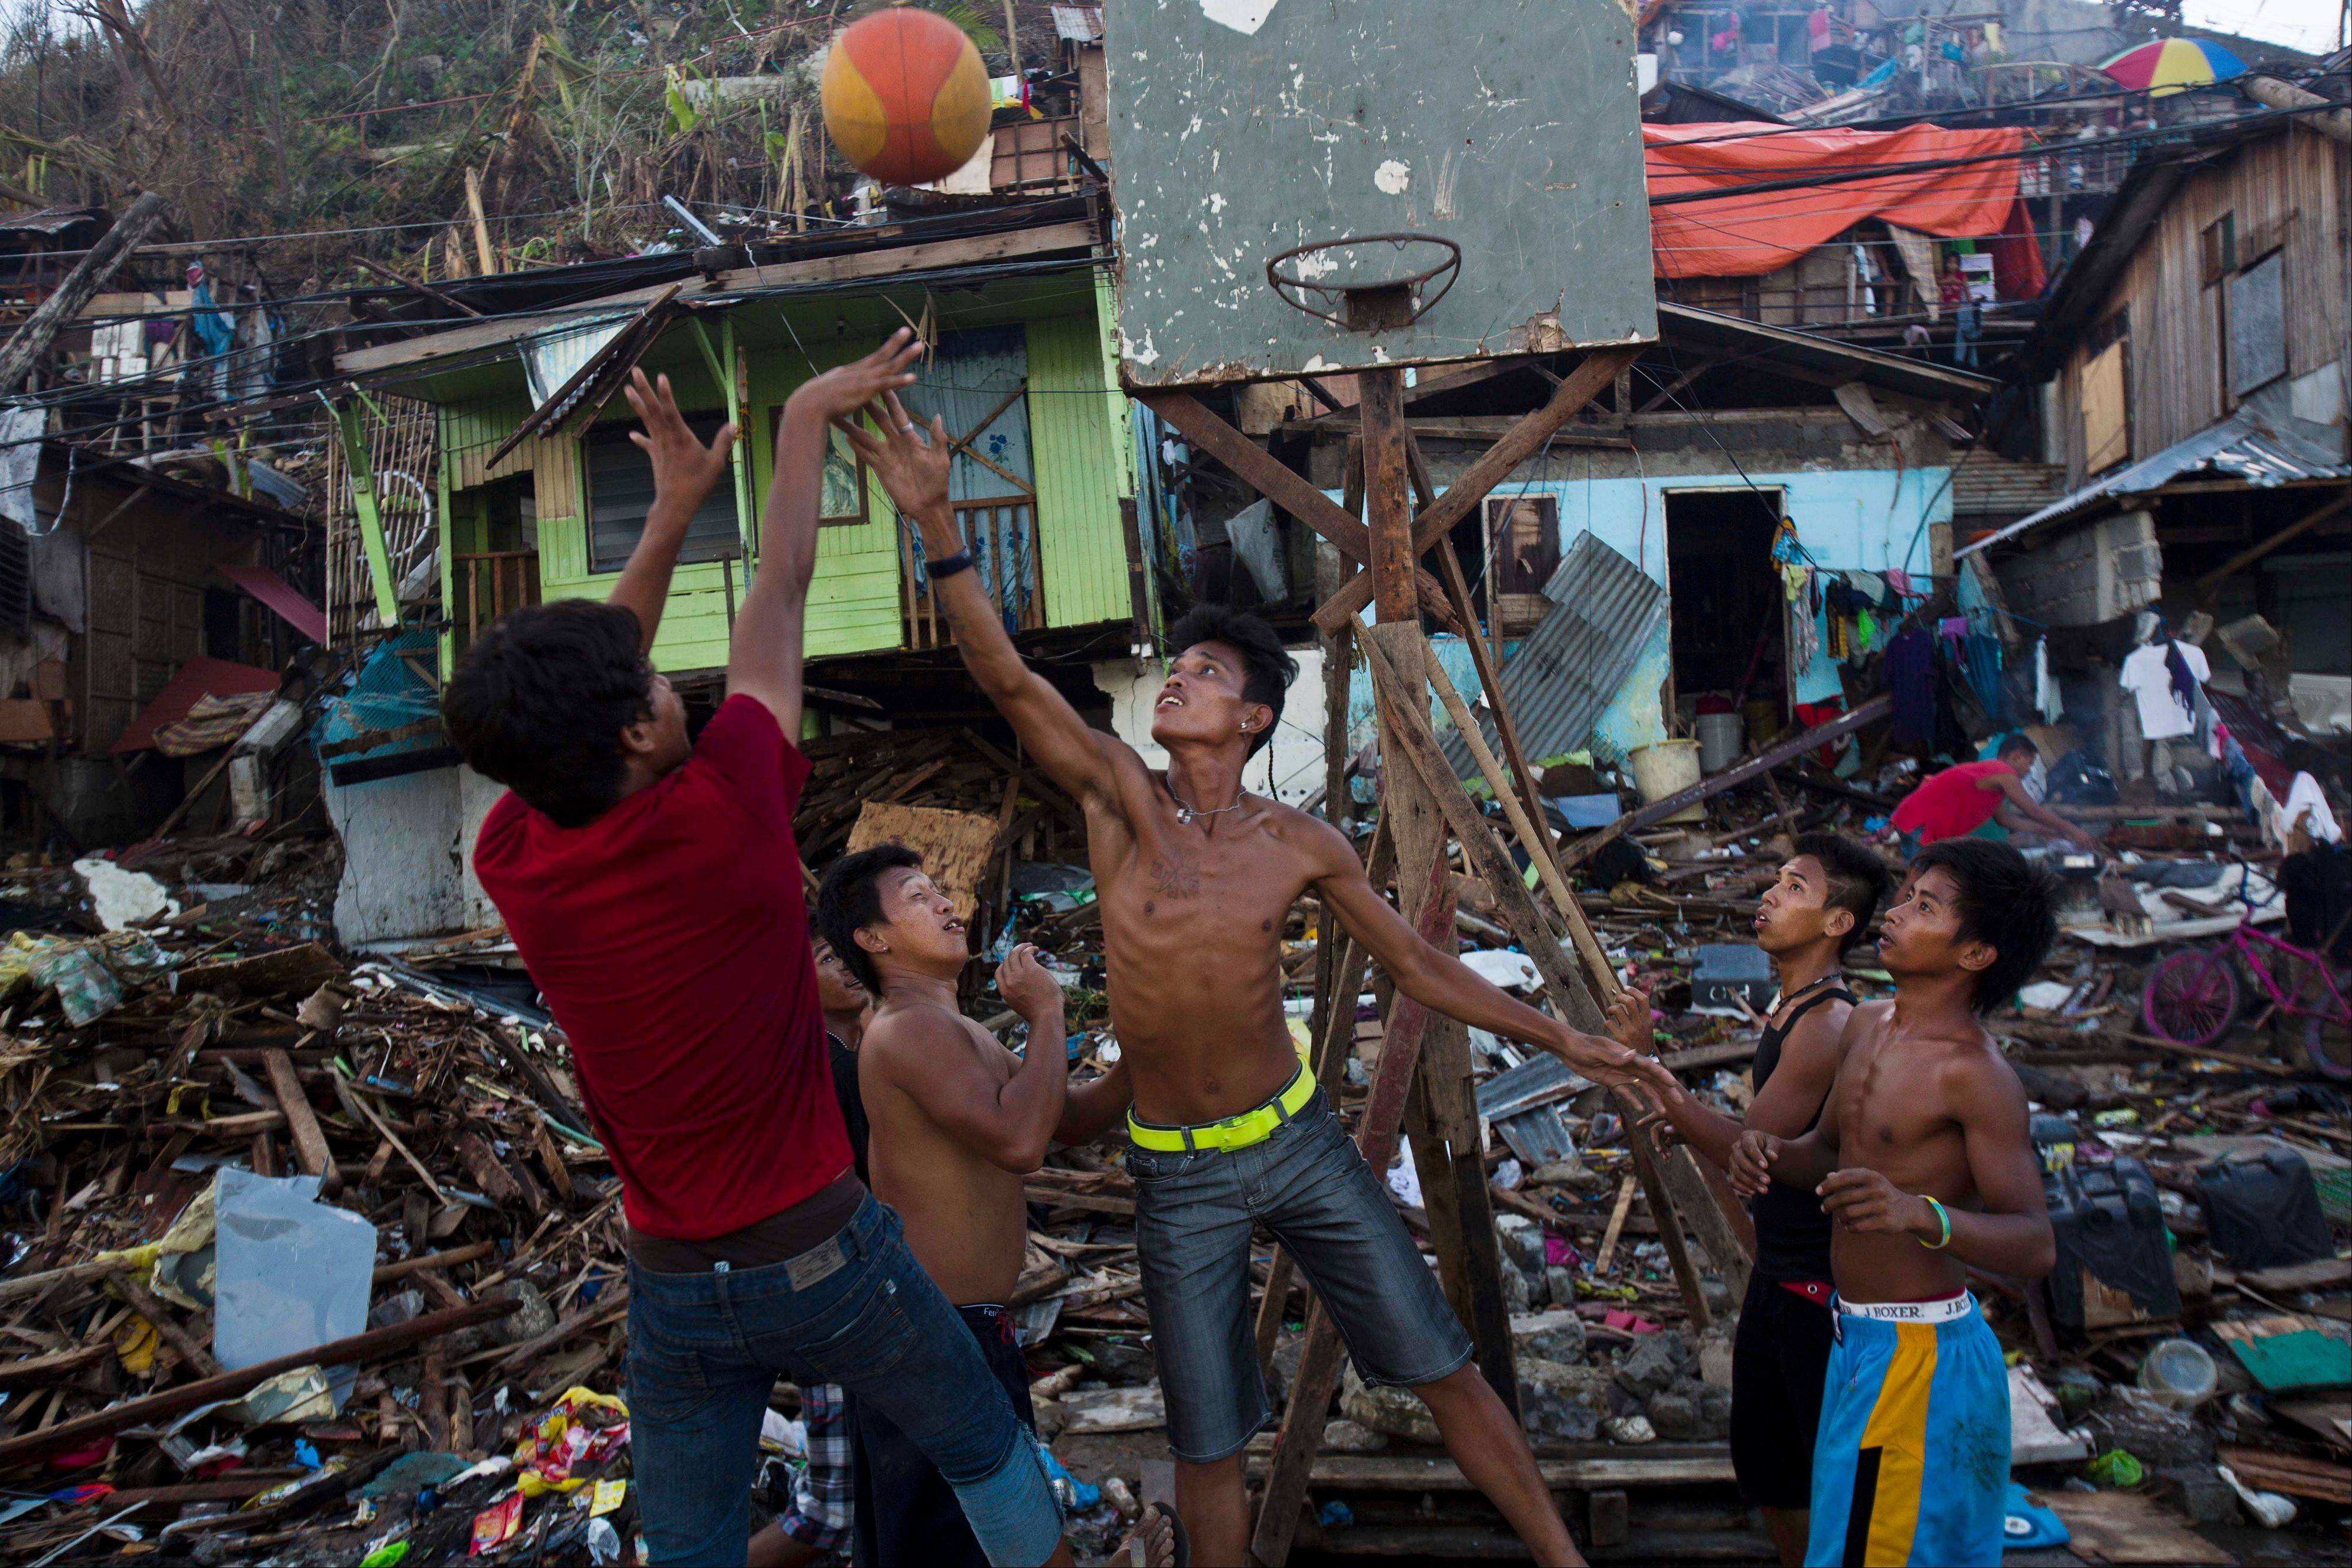 Typhoon Haiyan survivors play basketball in a destroyed neighborhood in Tacloban, Philippines. They found the hoop in the ruins of their obliterated neighborhood. They propped up the backboard with broken wood beams and rusty nails scavenged from vast mounds of storm-blasted homes.